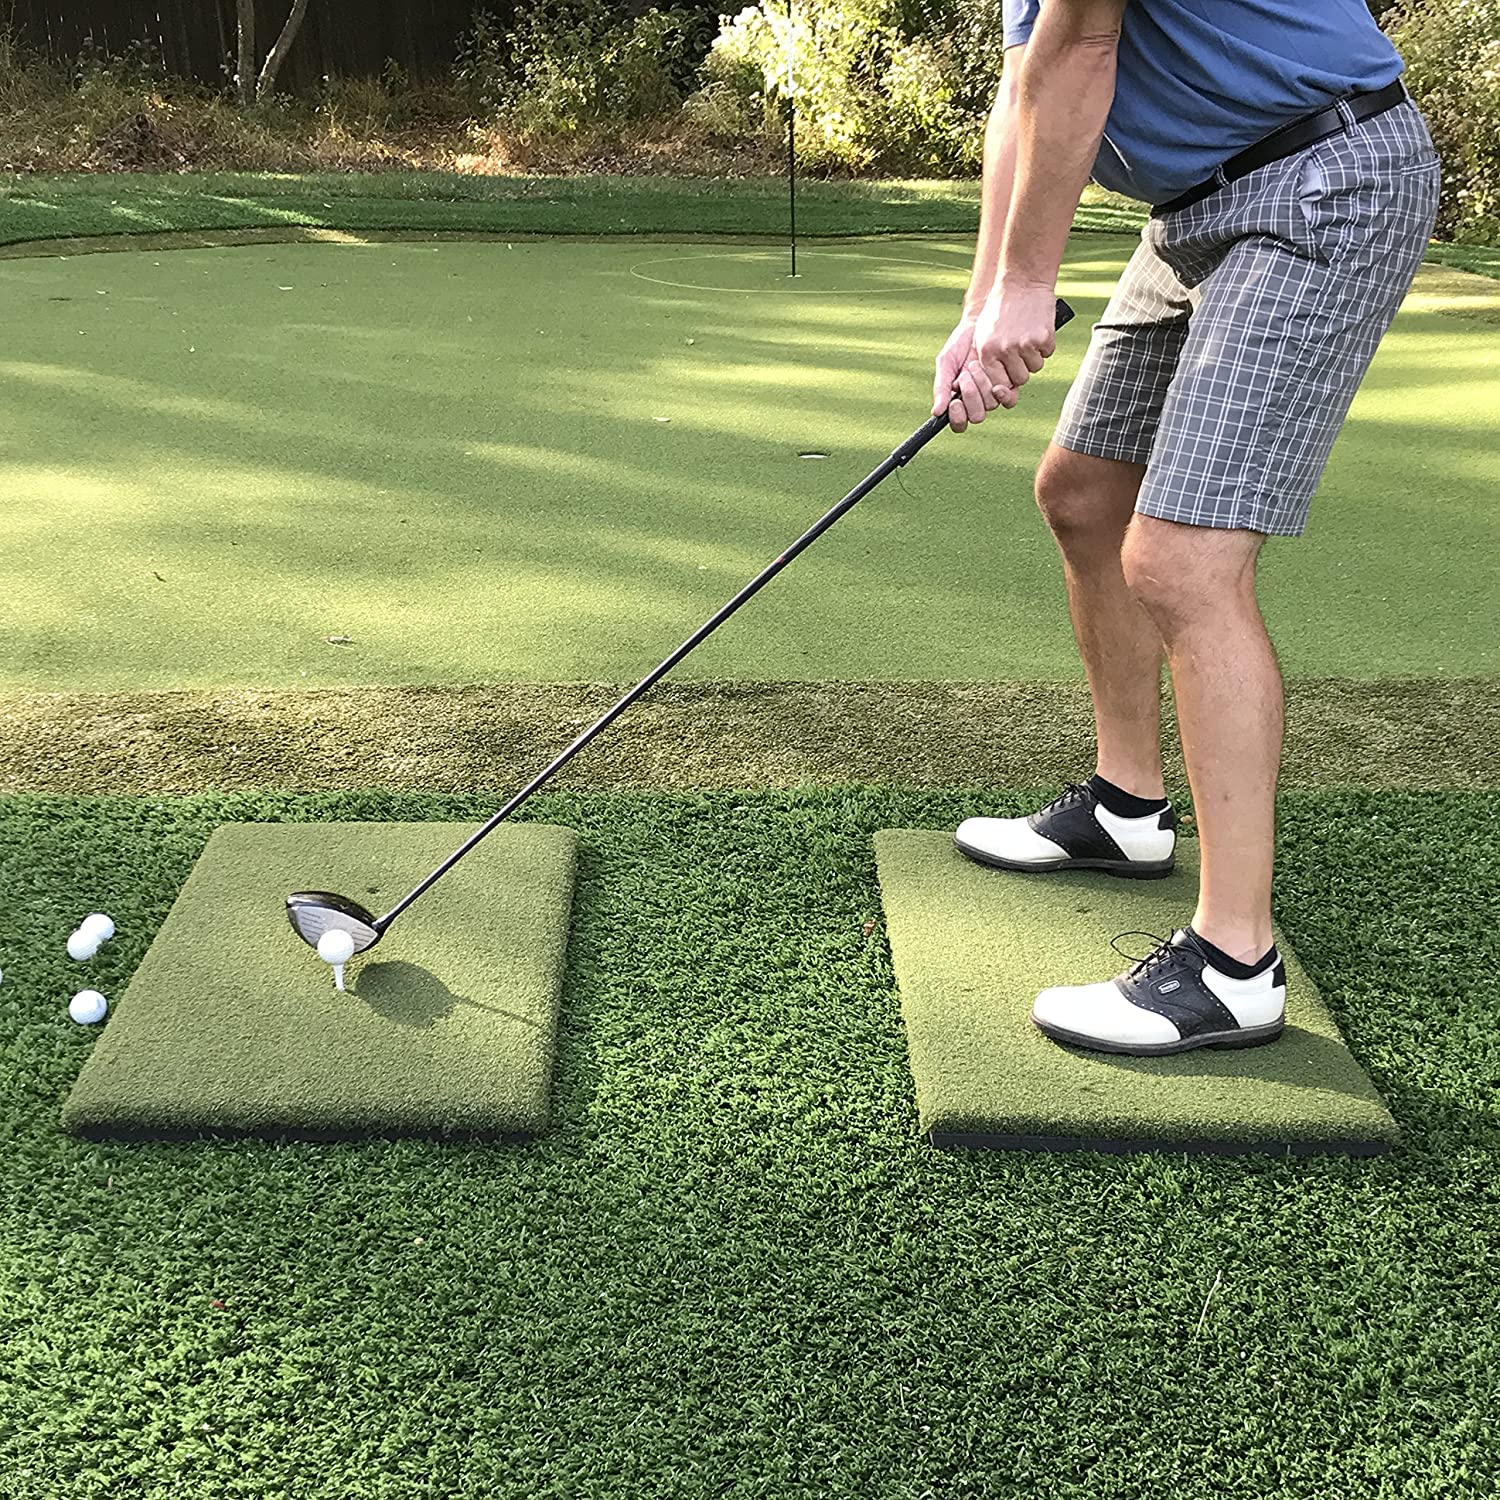 Real Feel Golf Mats The Original Country Club Elite The First Golf Mat That Takes A Real Tee And Lets You Swing Down Through Simulator Indoor